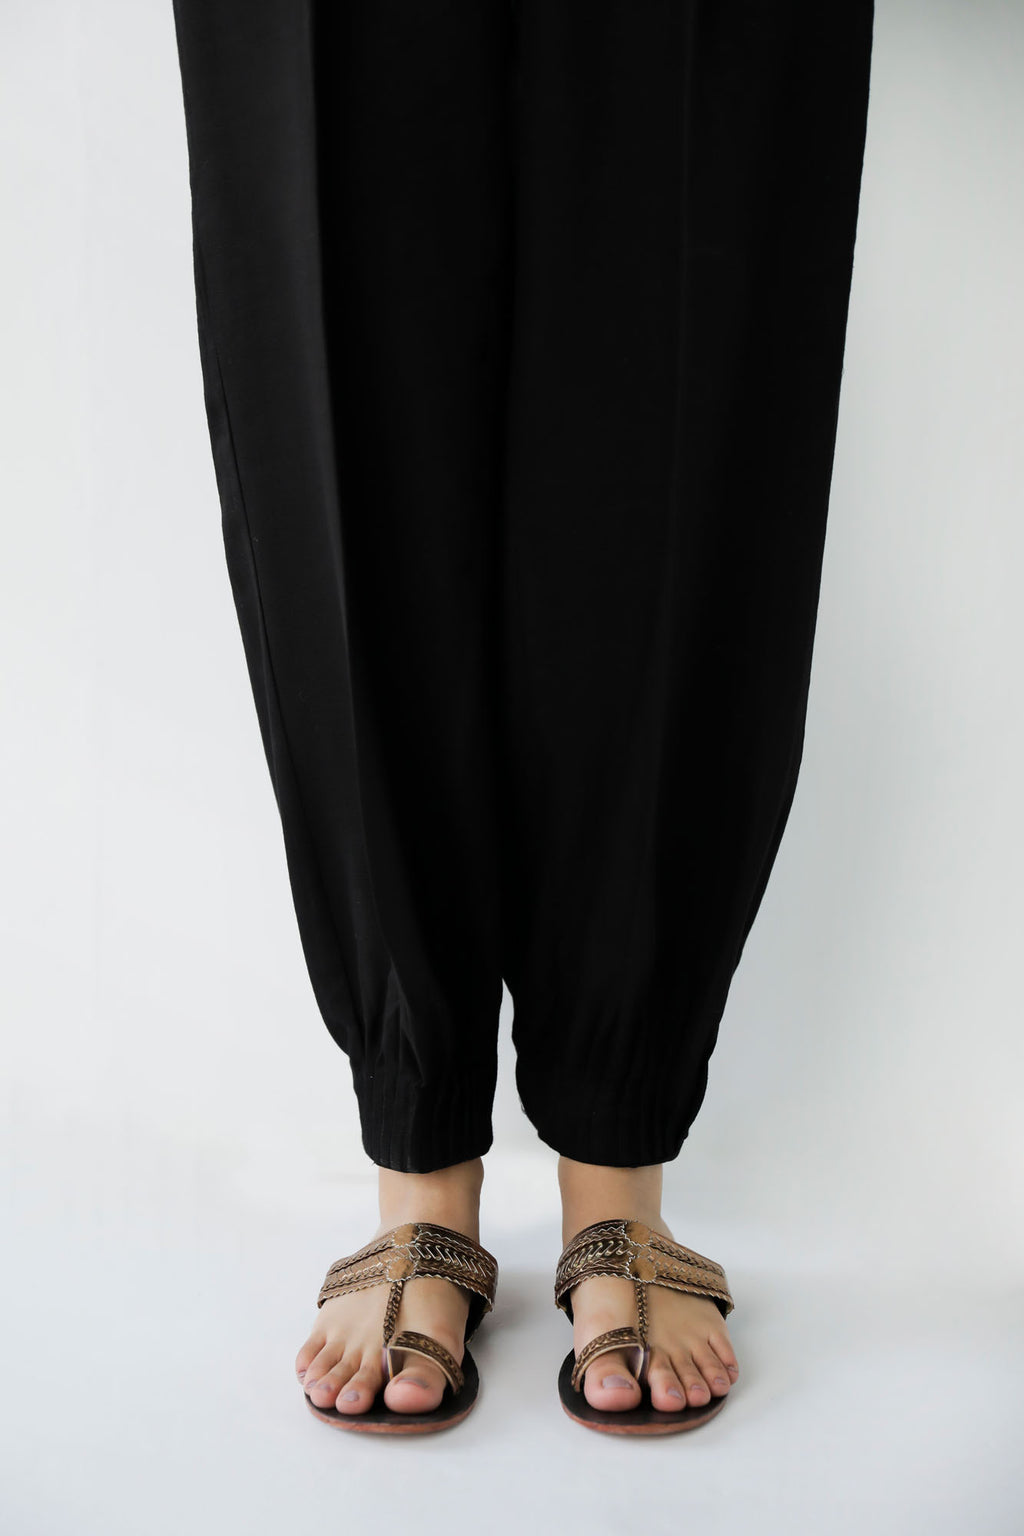 JOG PANTS (WBC401148) - Ethnic by Outfitters